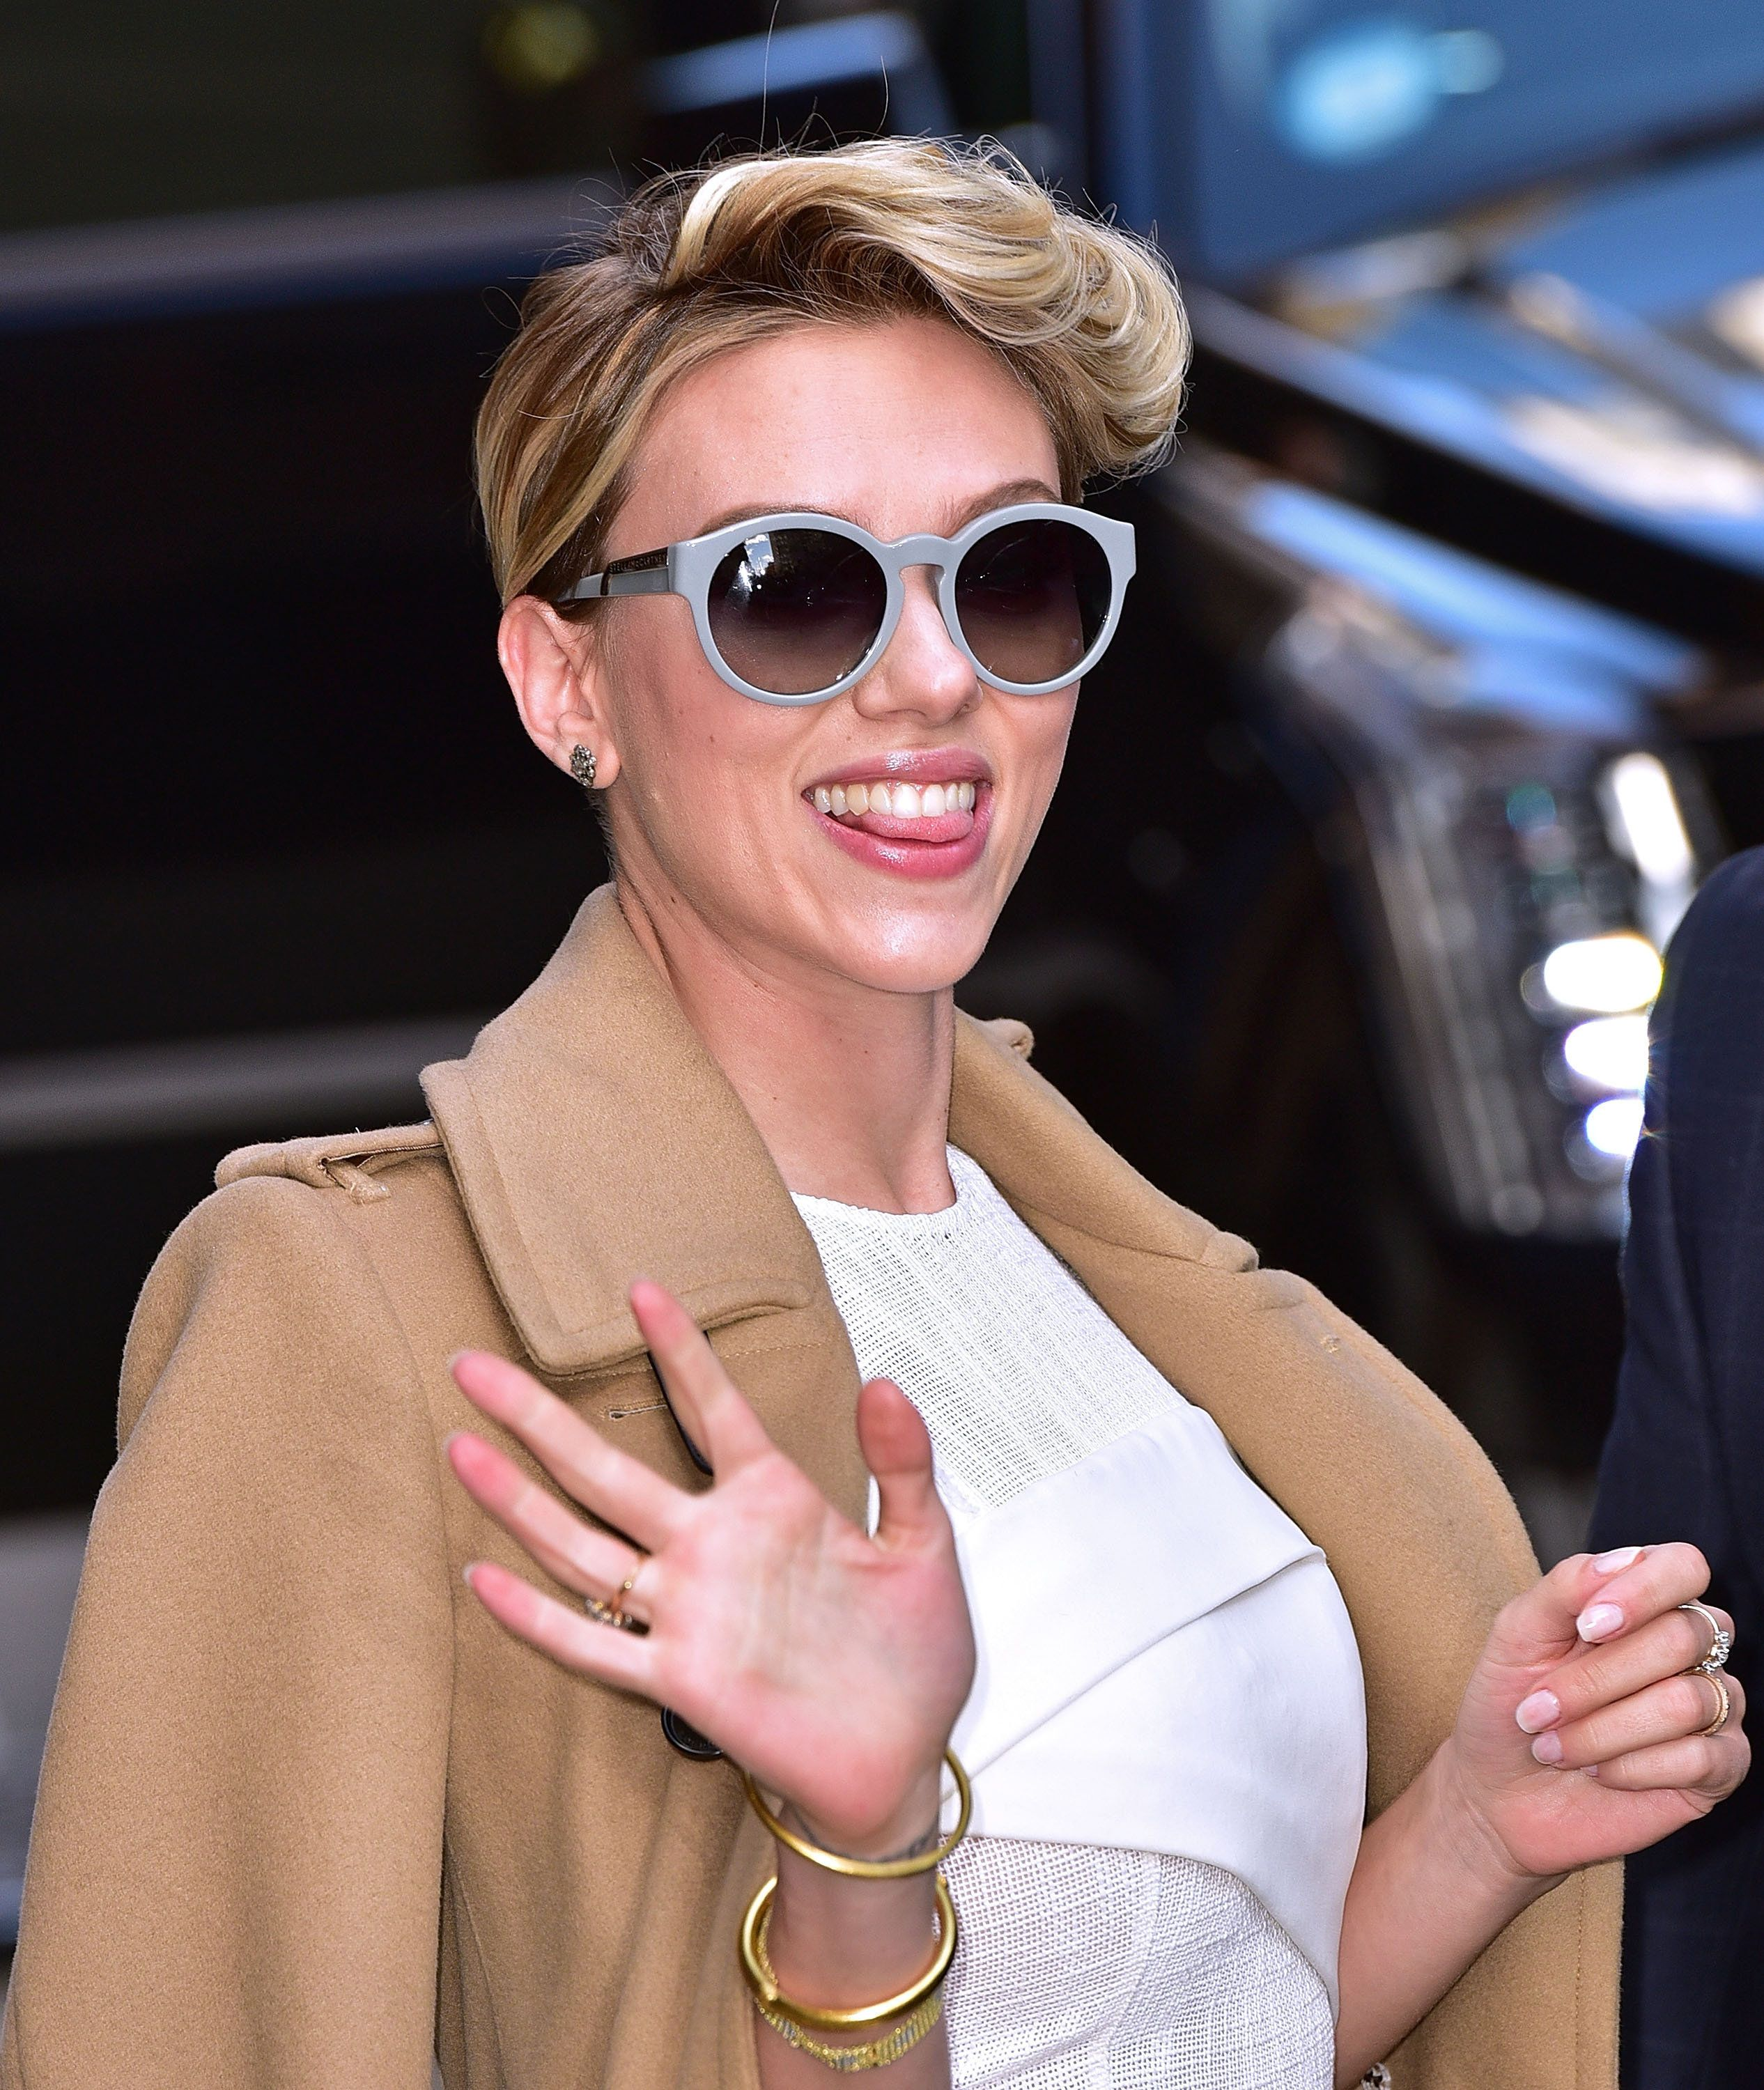 NEW YORK, NY - APRIL 27:  Scarlett Johansson leaves the 'Late Show with David Letterman' on April 27, 2015 in New York City.  (Photo by James Devaney/GC Images)